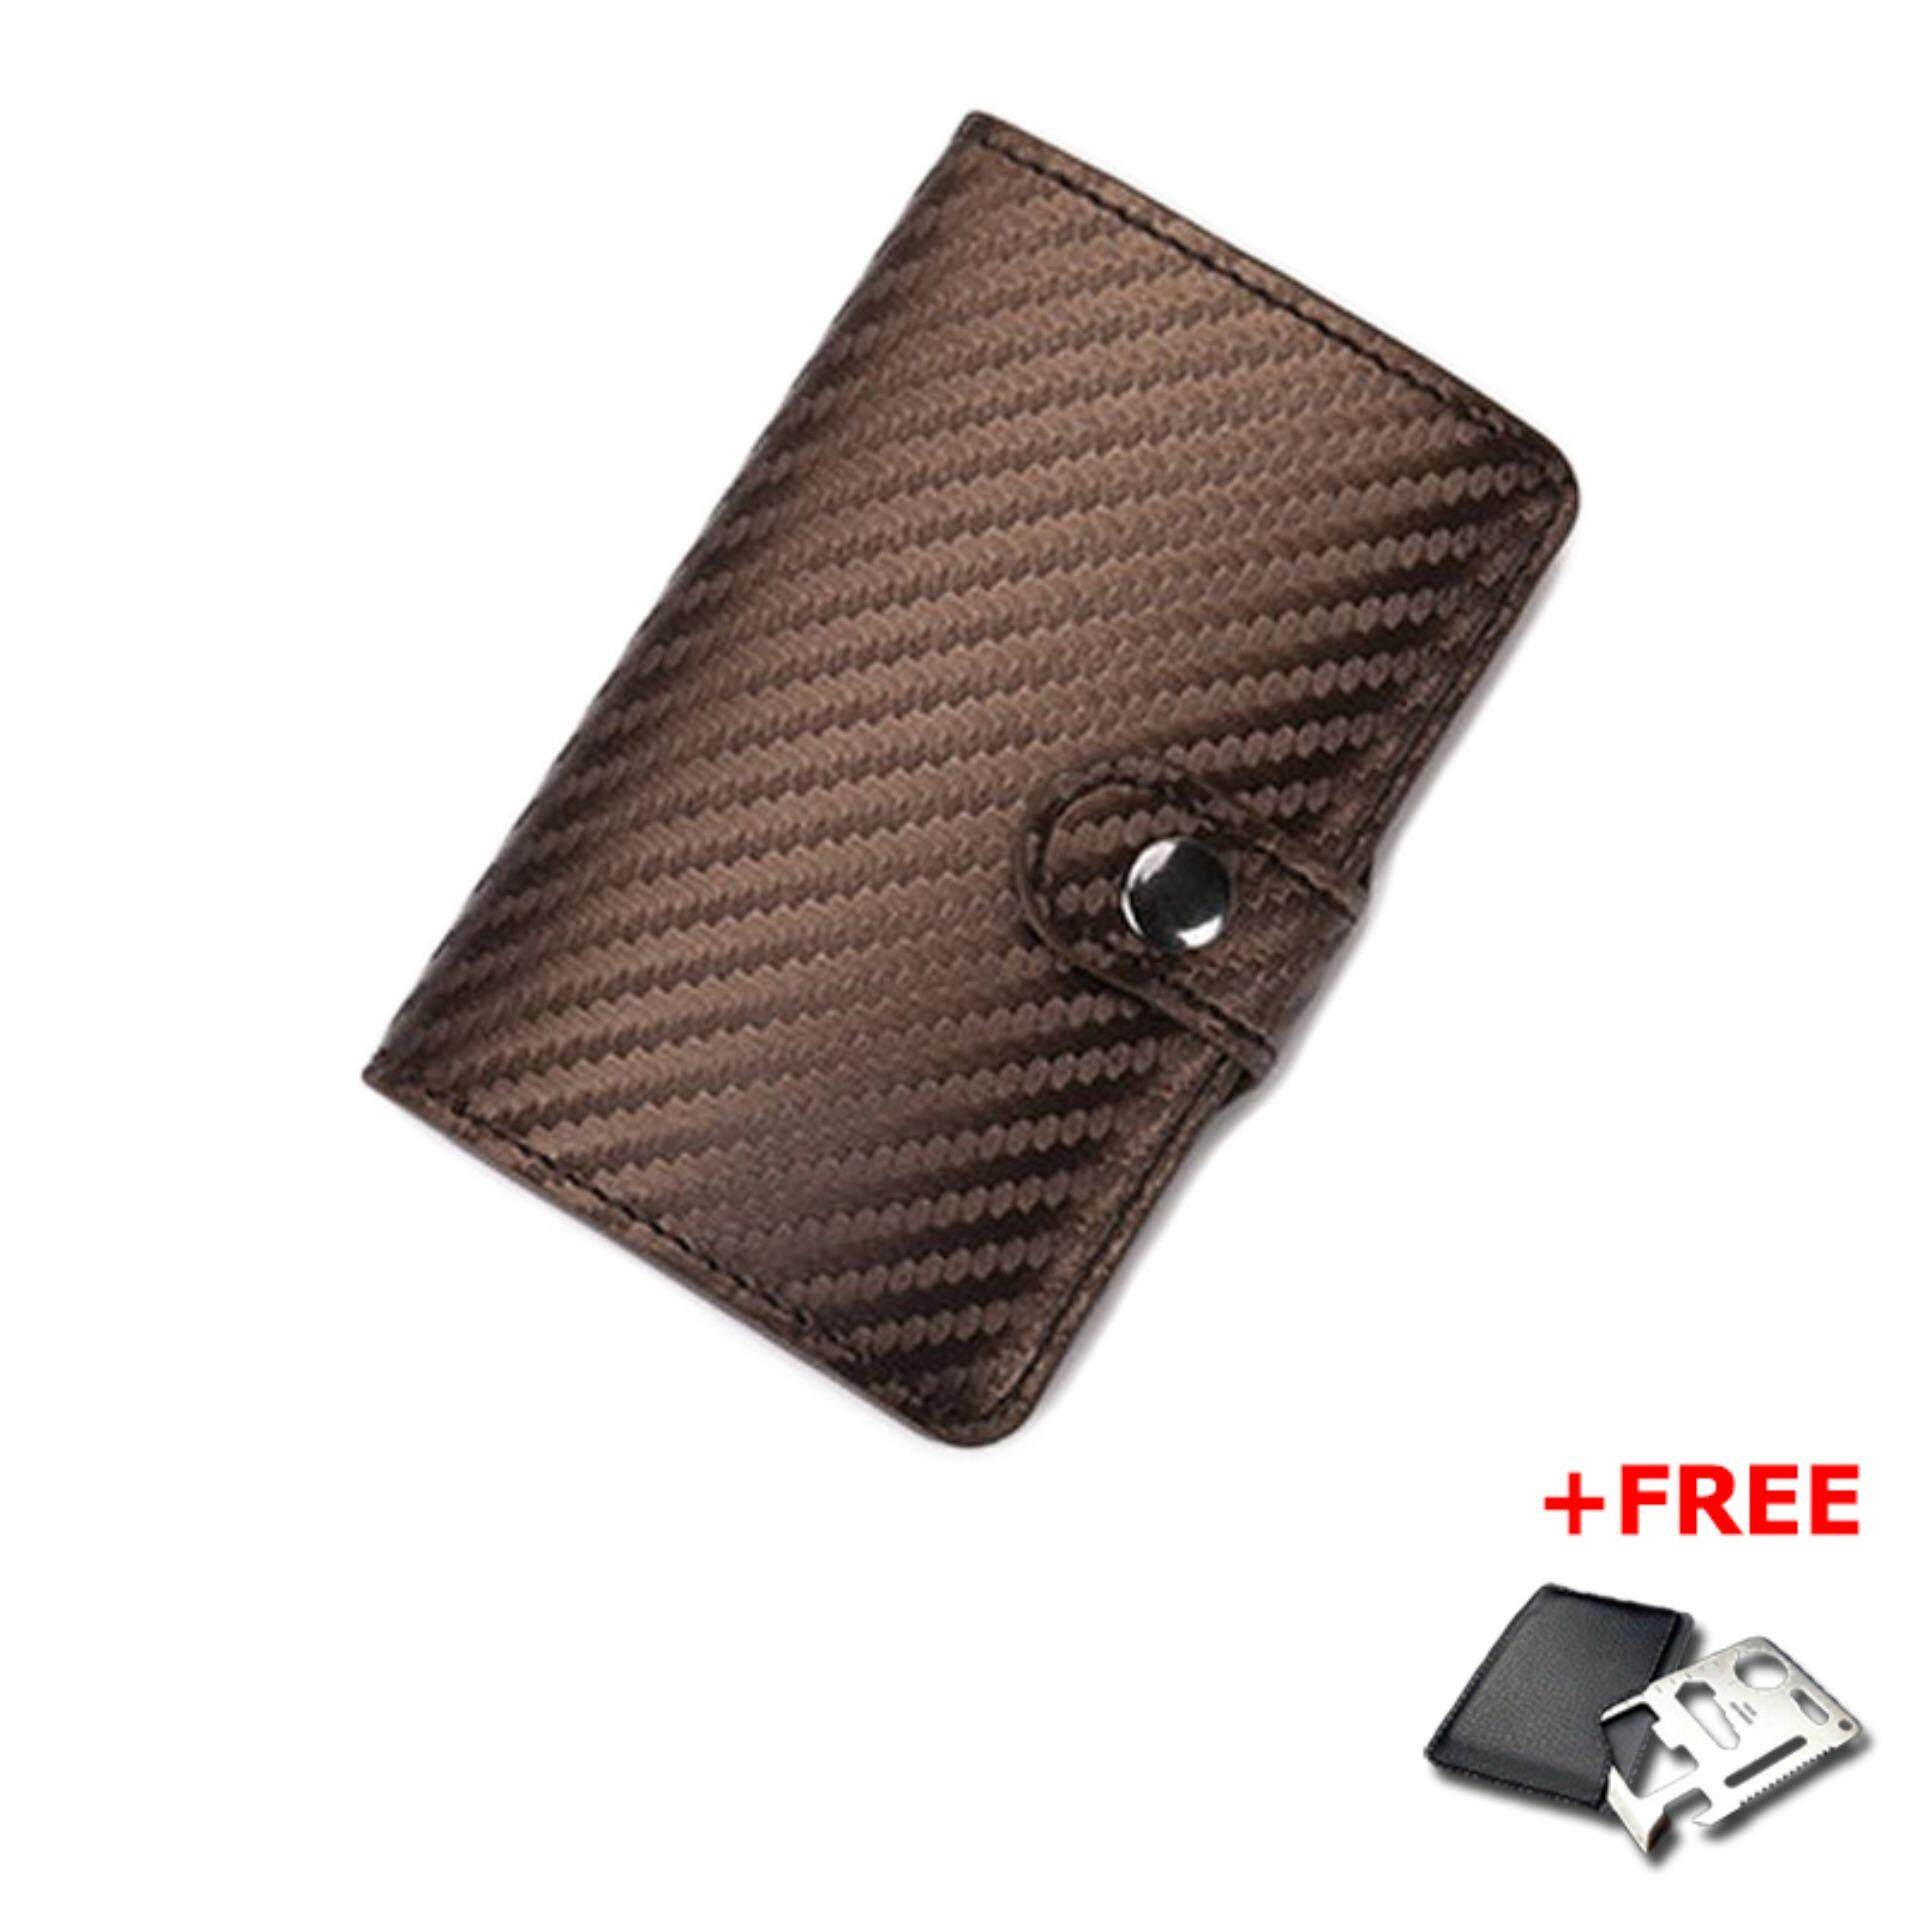 Slim Carbon Fiber Credit Card Holder RFID Non-scan Metal Simple Wallet Money Case Card Organizer MI3183